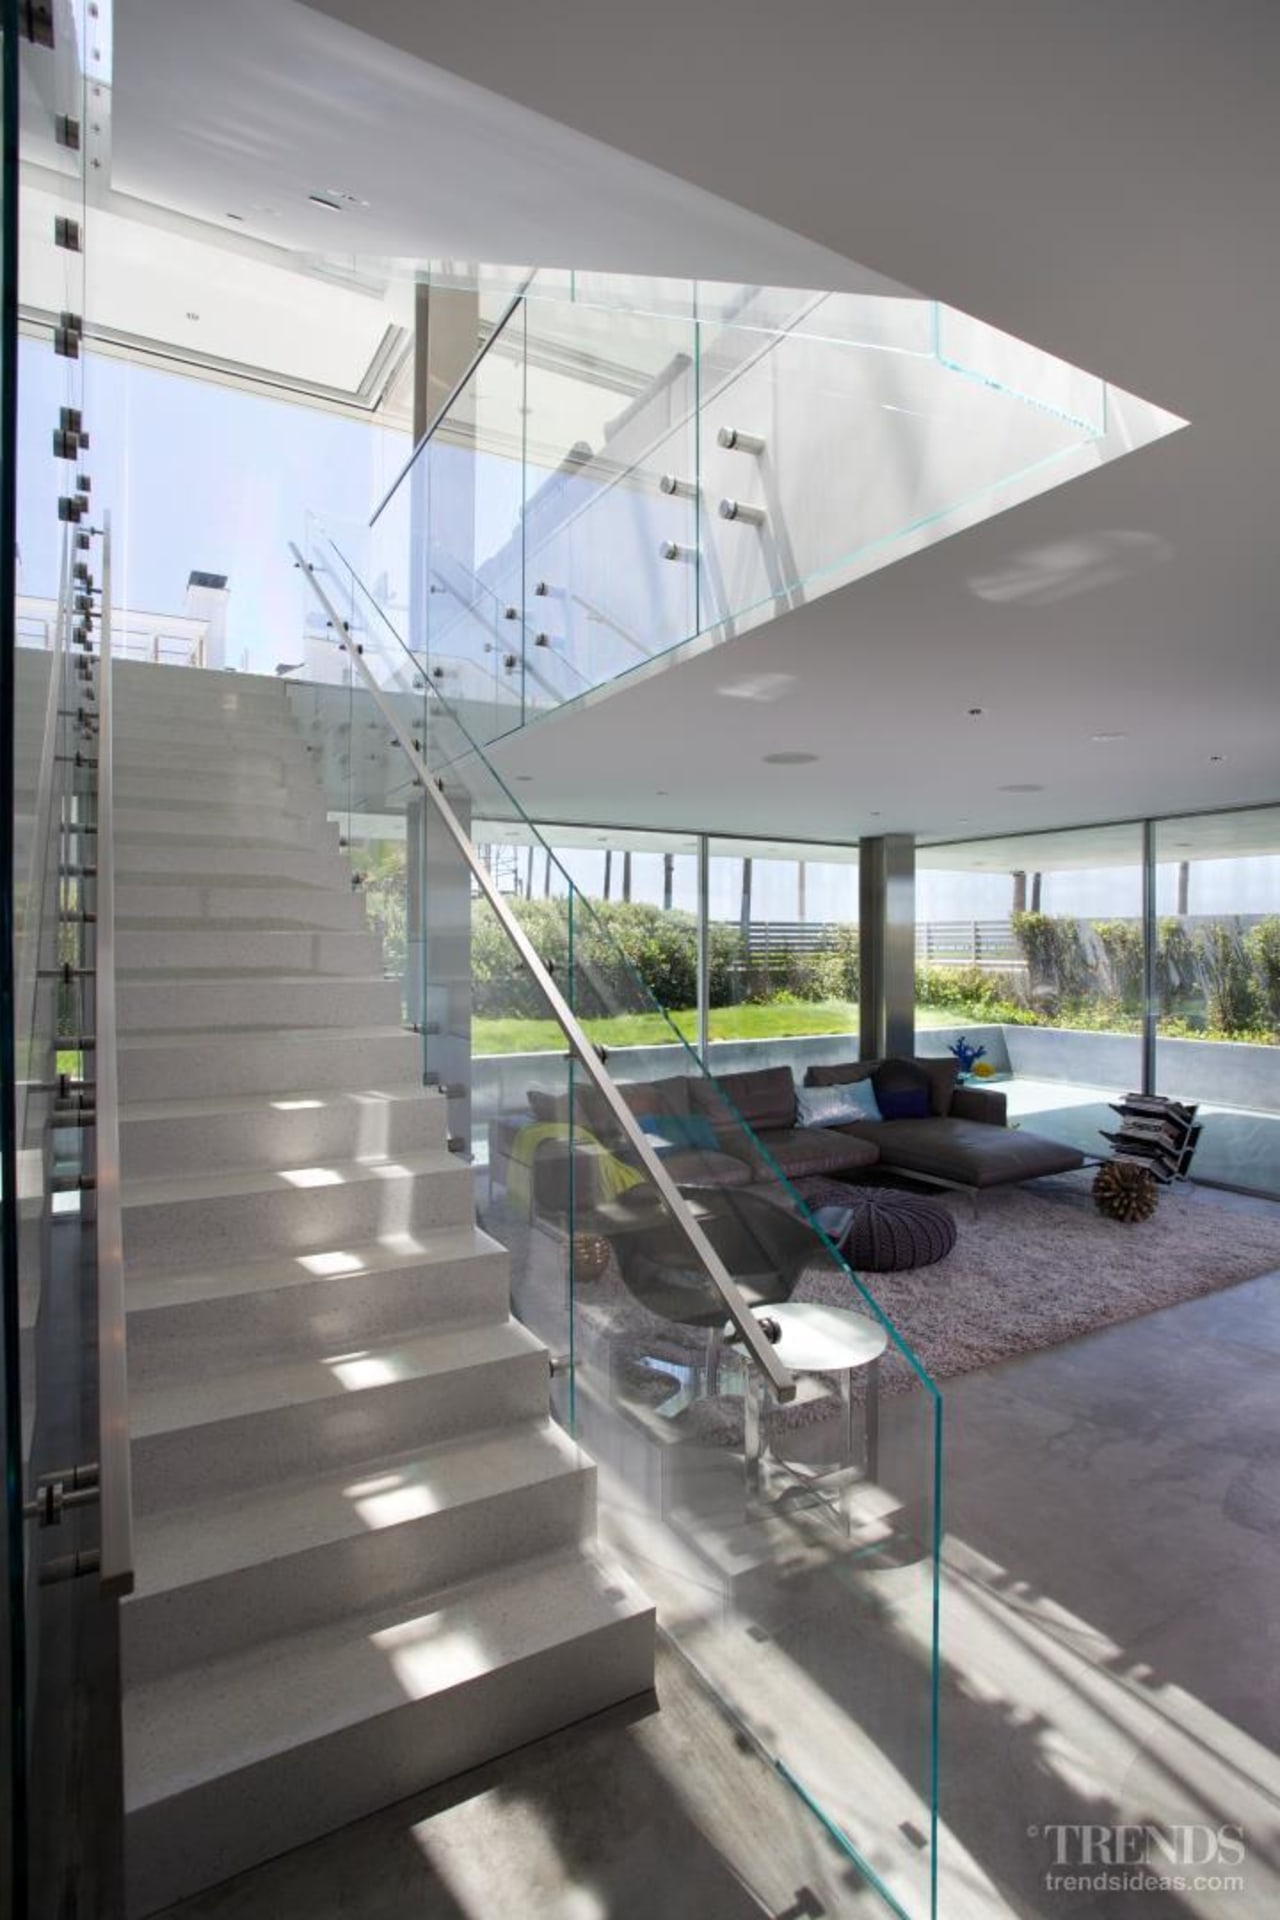 The first floor of this beachhouse accommodates a apartment, architecture, condominium, daylighting, glass, handrail, house, interior design, mixed use, real estate, stairs, structure, gray, white